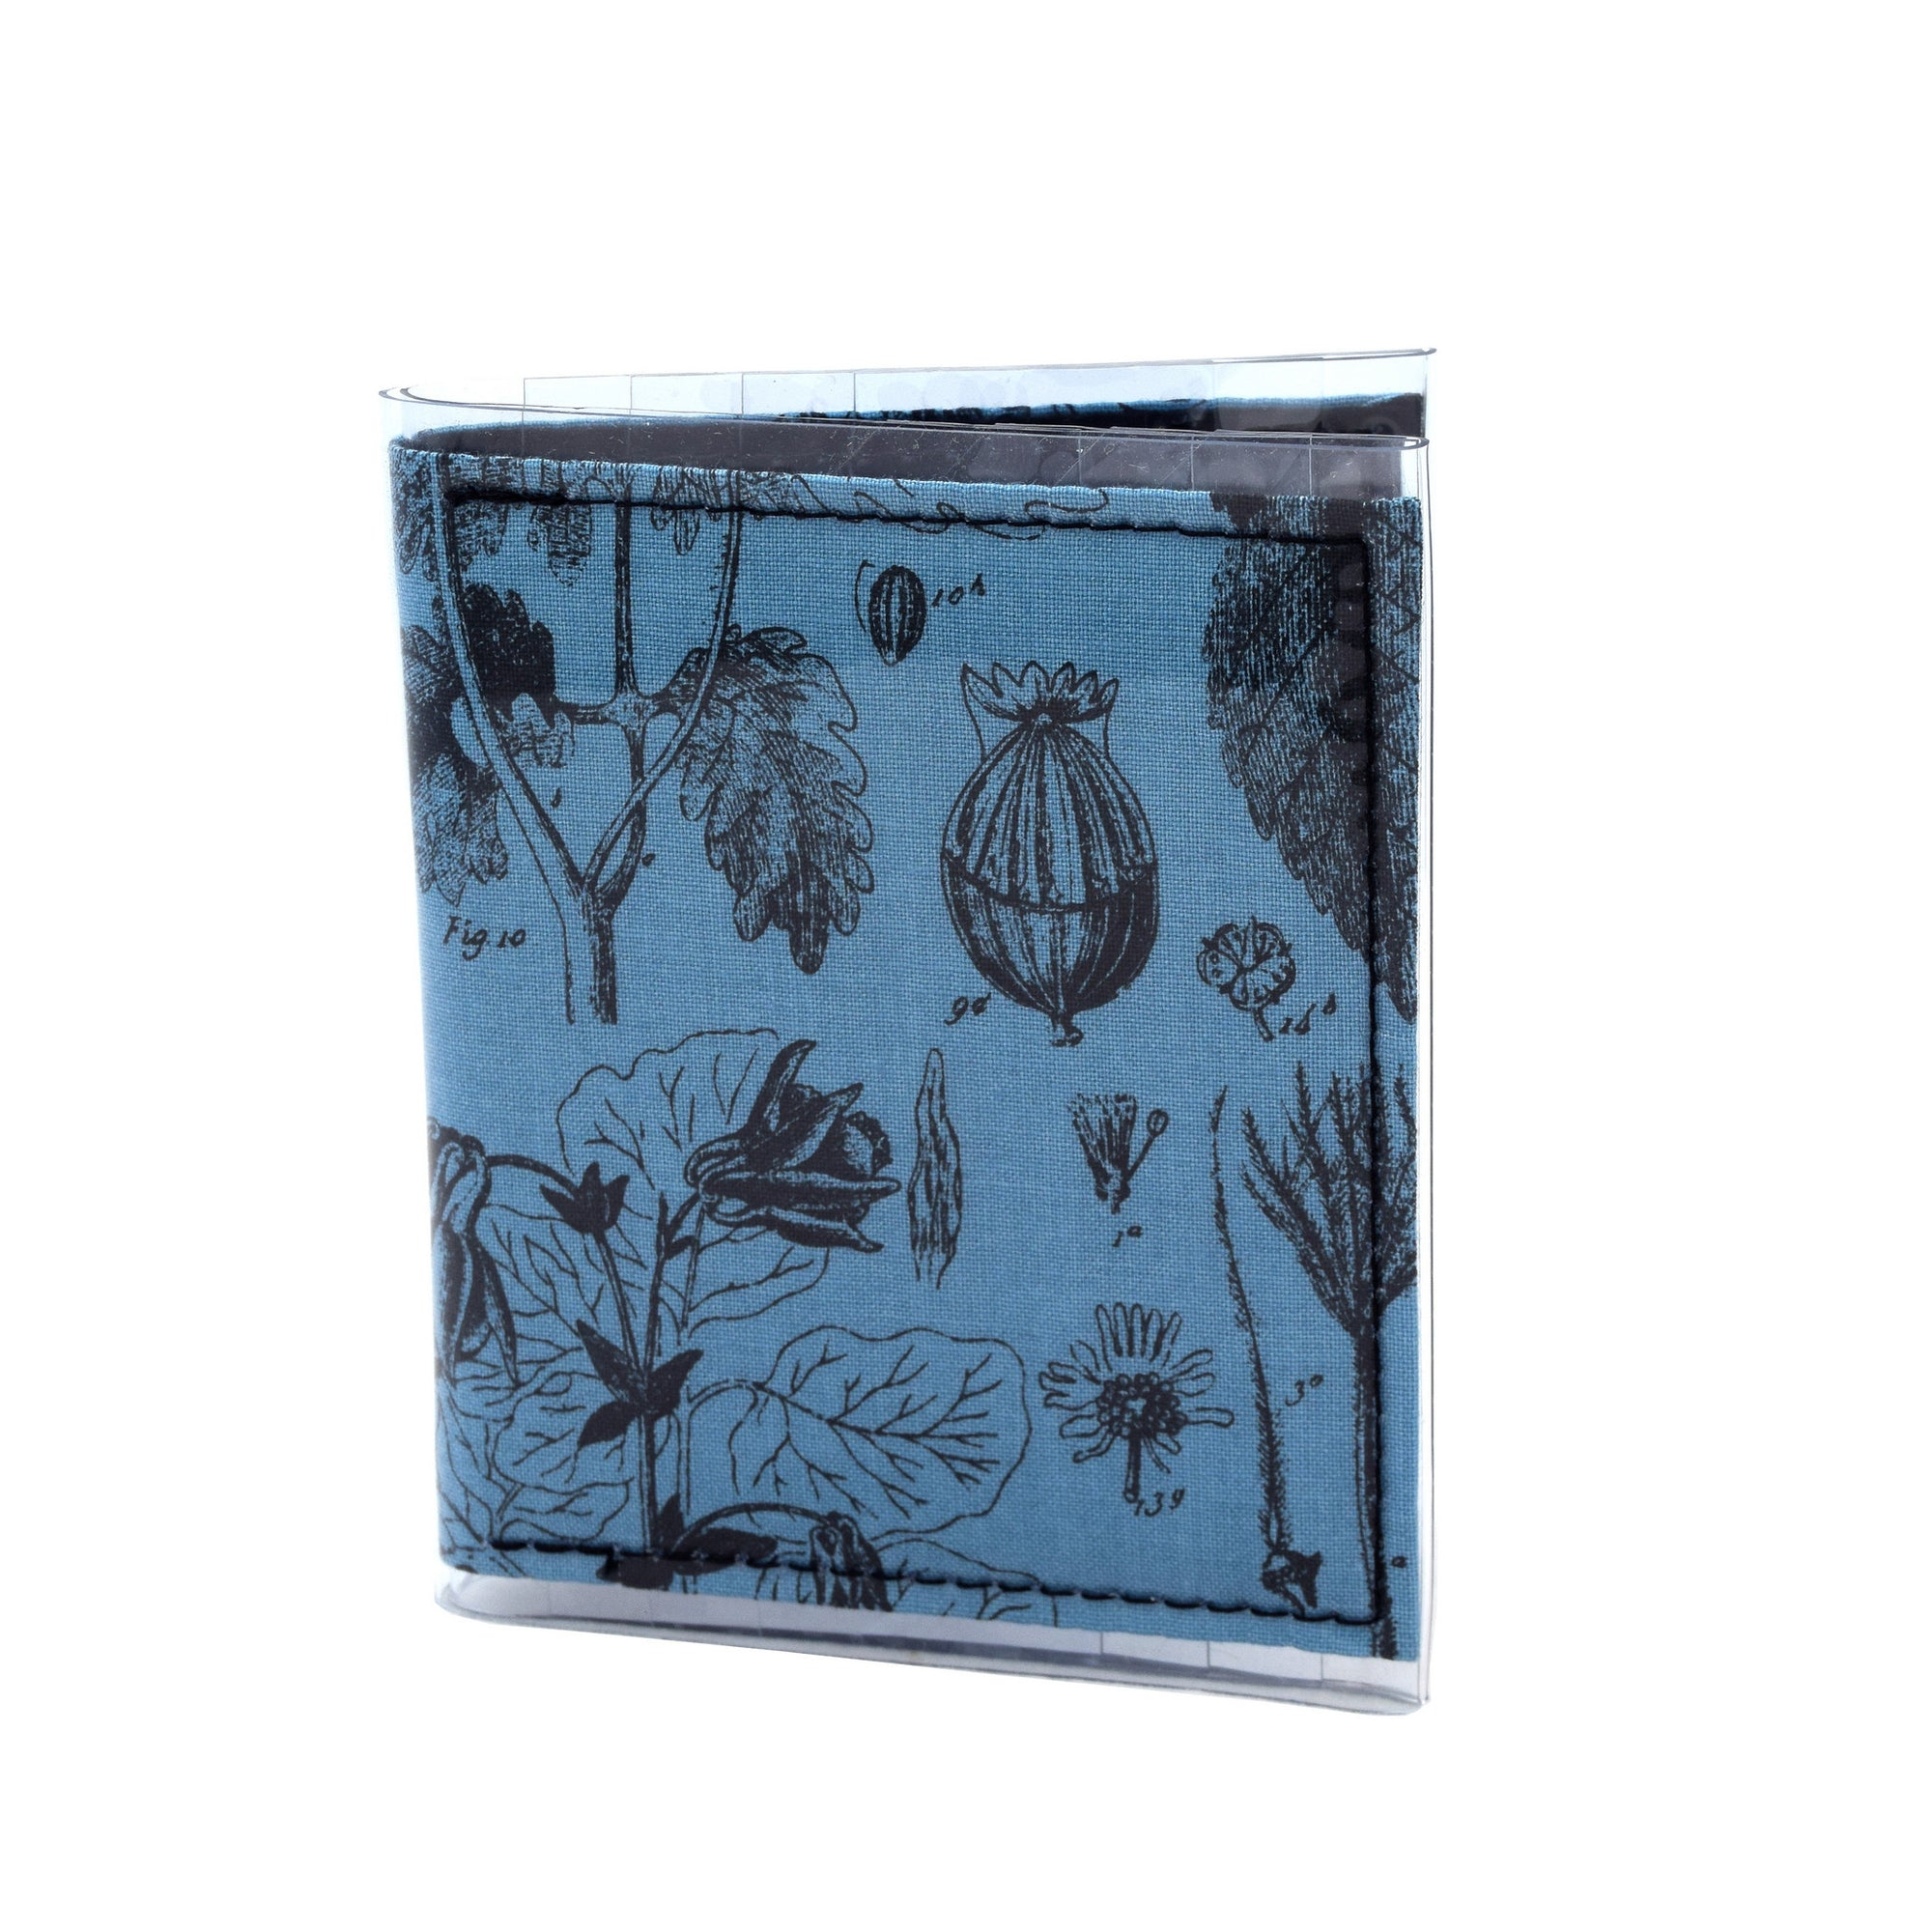 Warrior Wallet - The naturalist